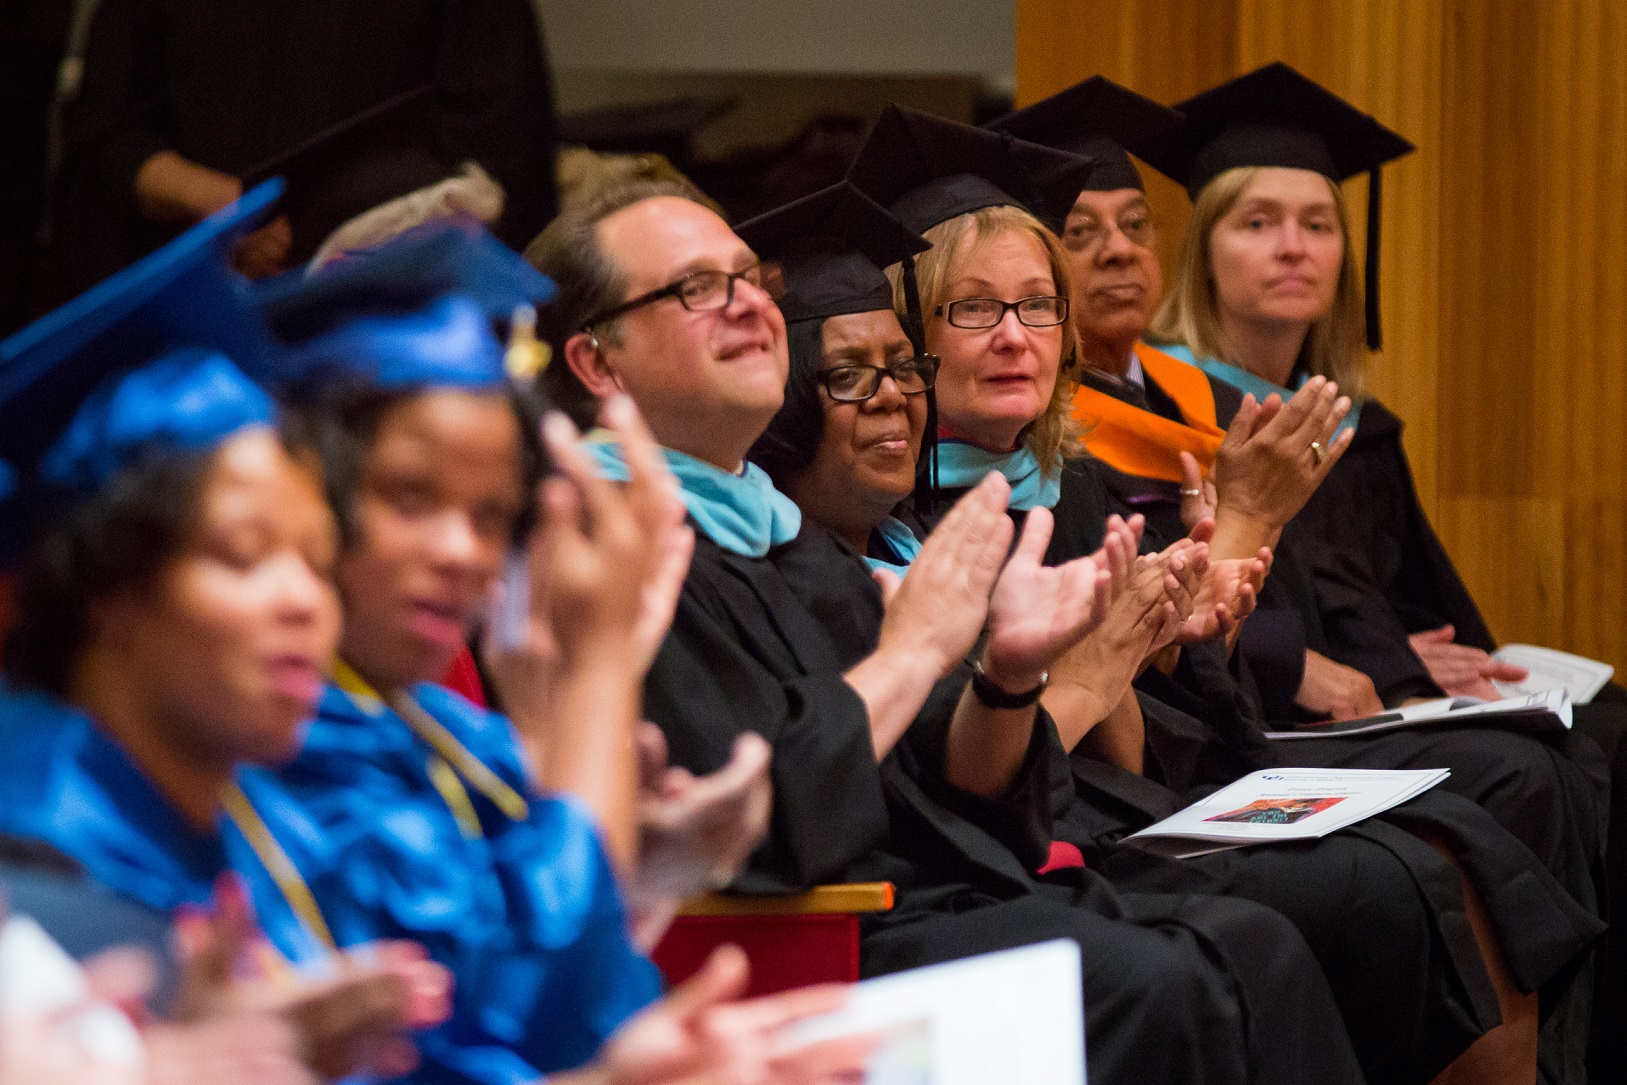 Graduates and faculty at the UB Educational Opportunity Center's (UBEOC) 44th Annual Commencement on May 24, 2017 in Slee Hall